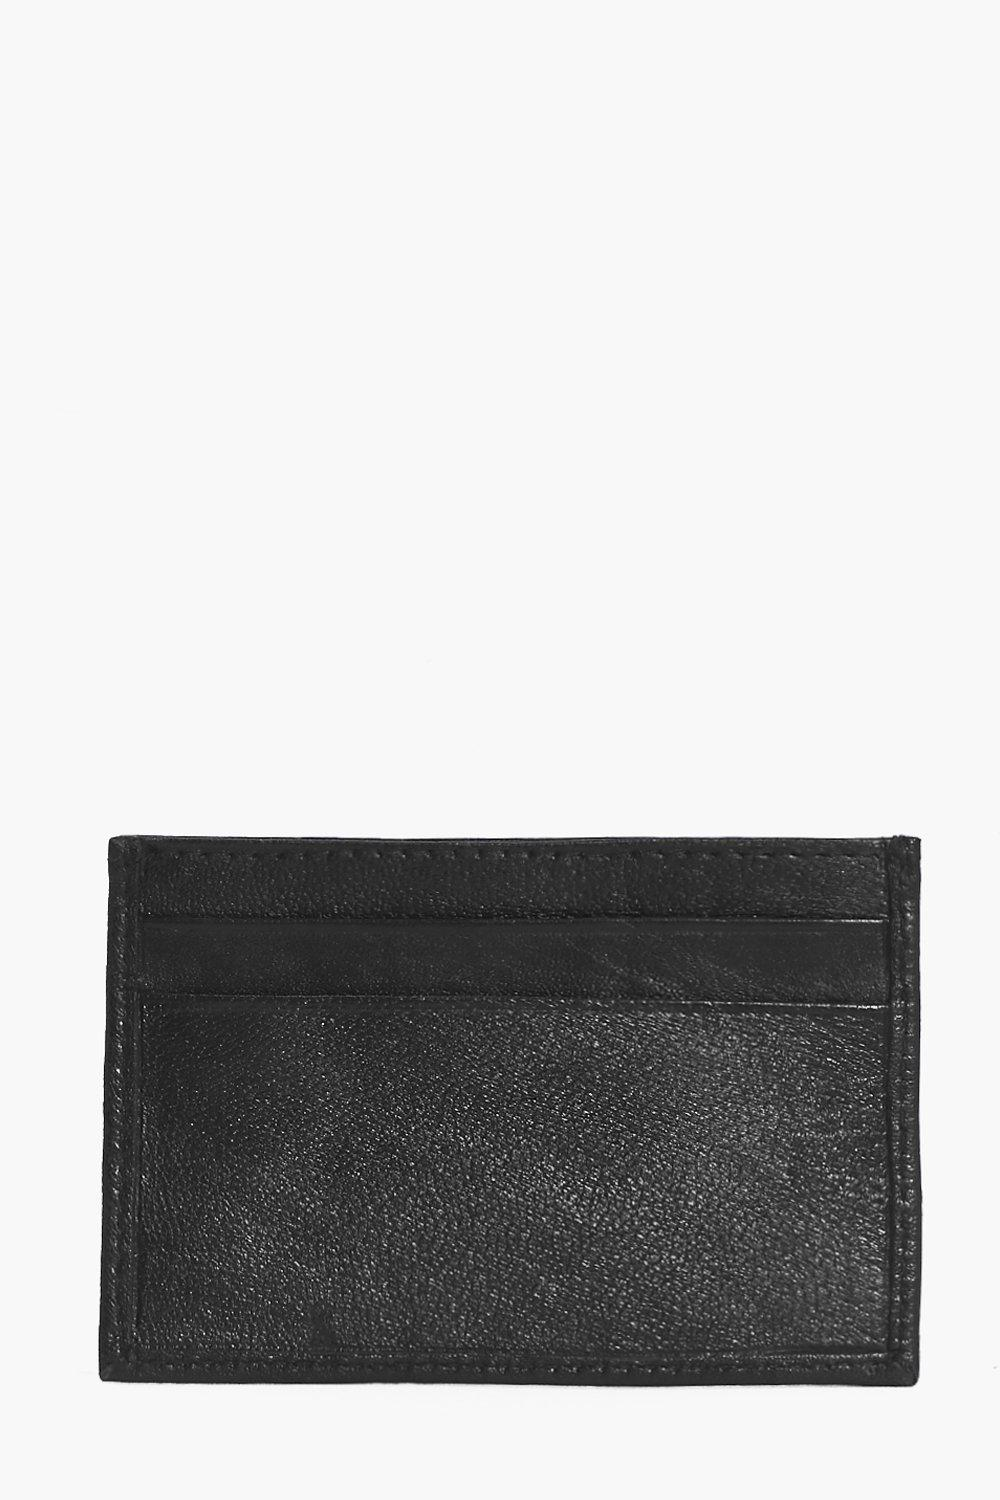 boohooMAN black Real Leather Card Holder